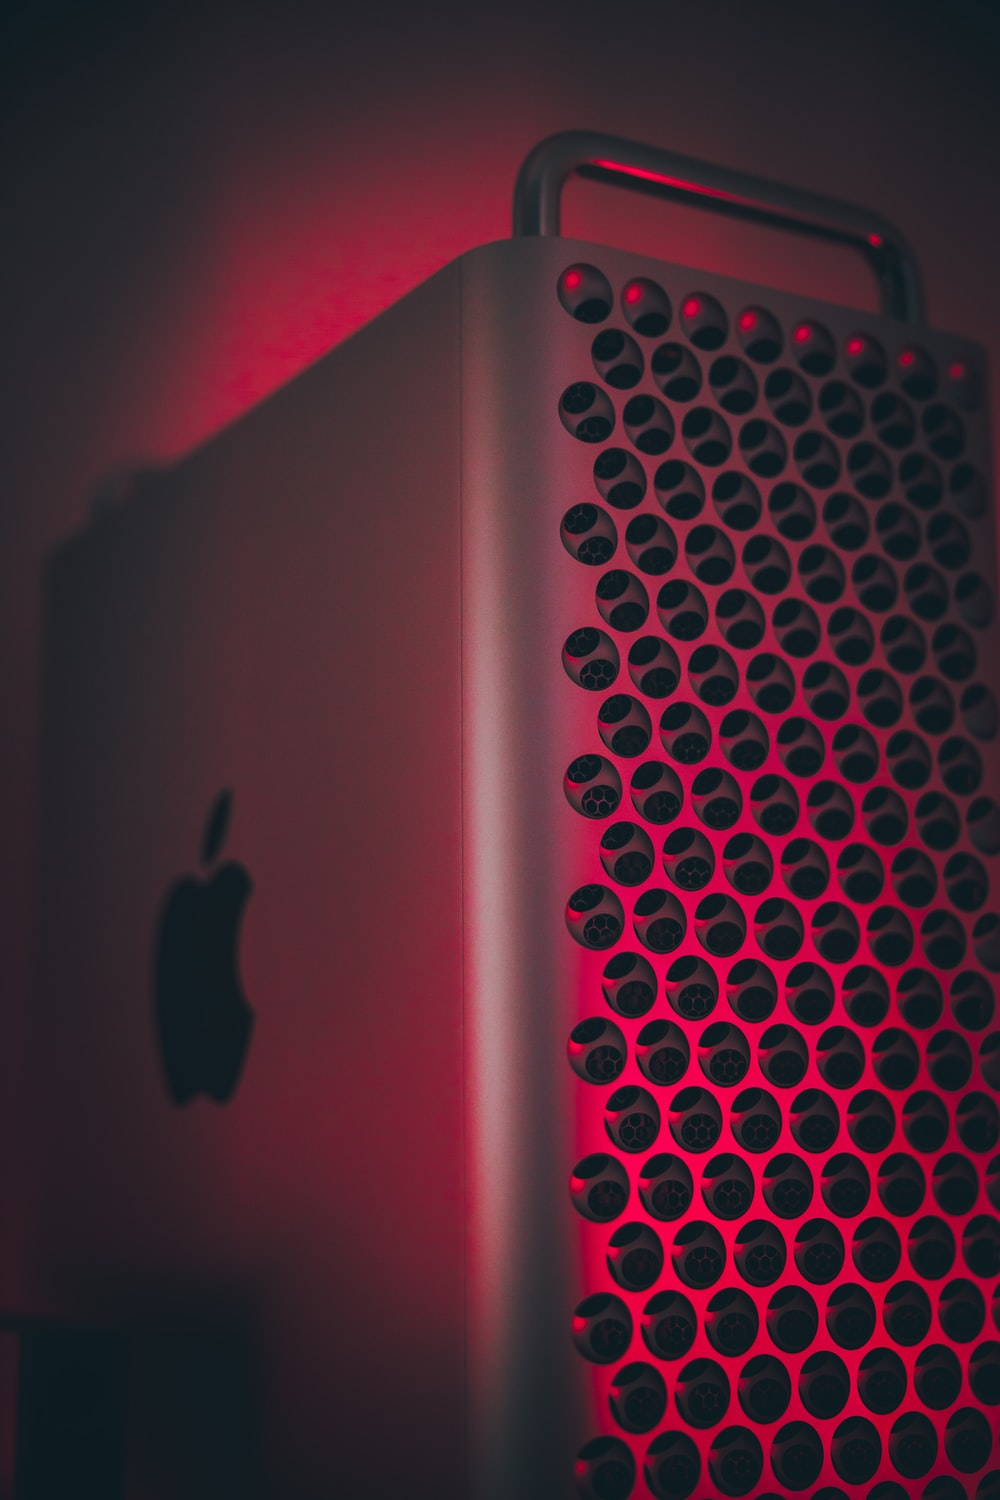 silver ipad on red textile